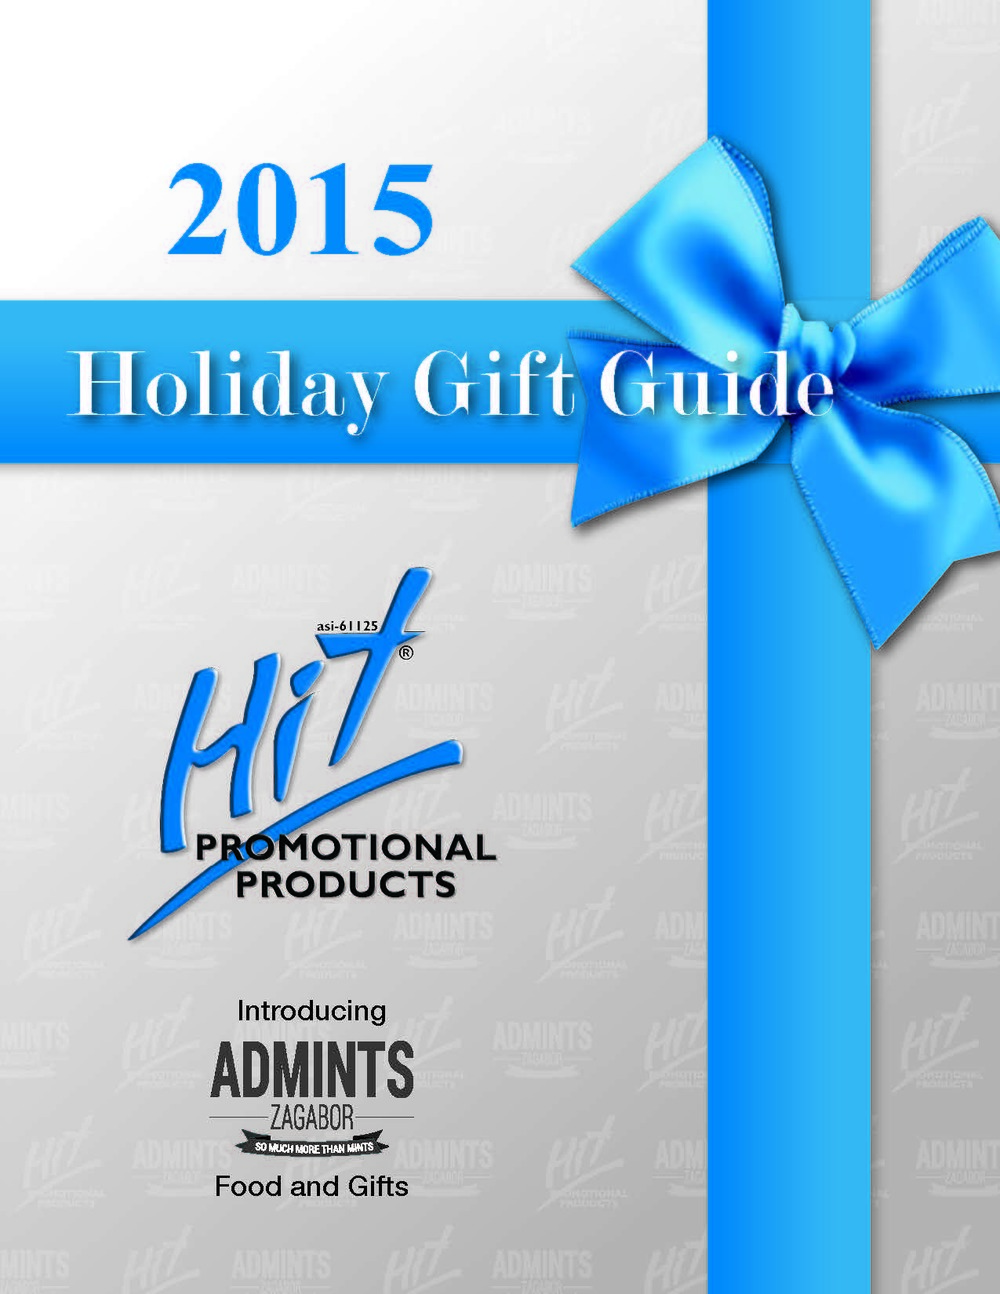 Hit Holiday - Drinkware, Technology gifts, Bags, LOTS more.